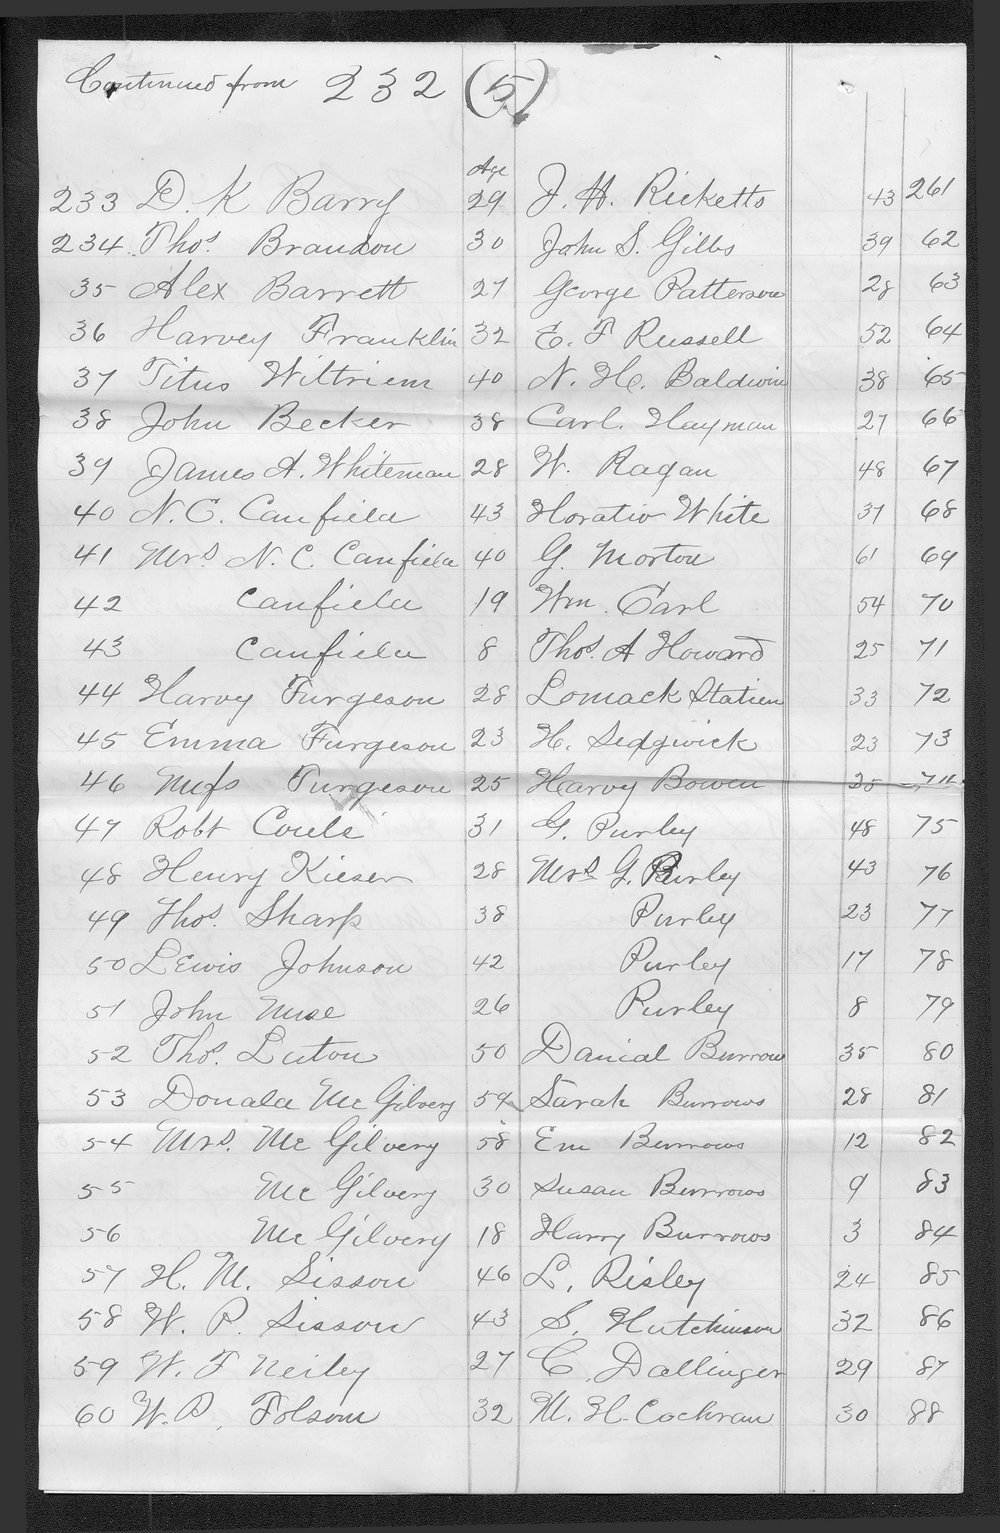 Barber county organization records - 10